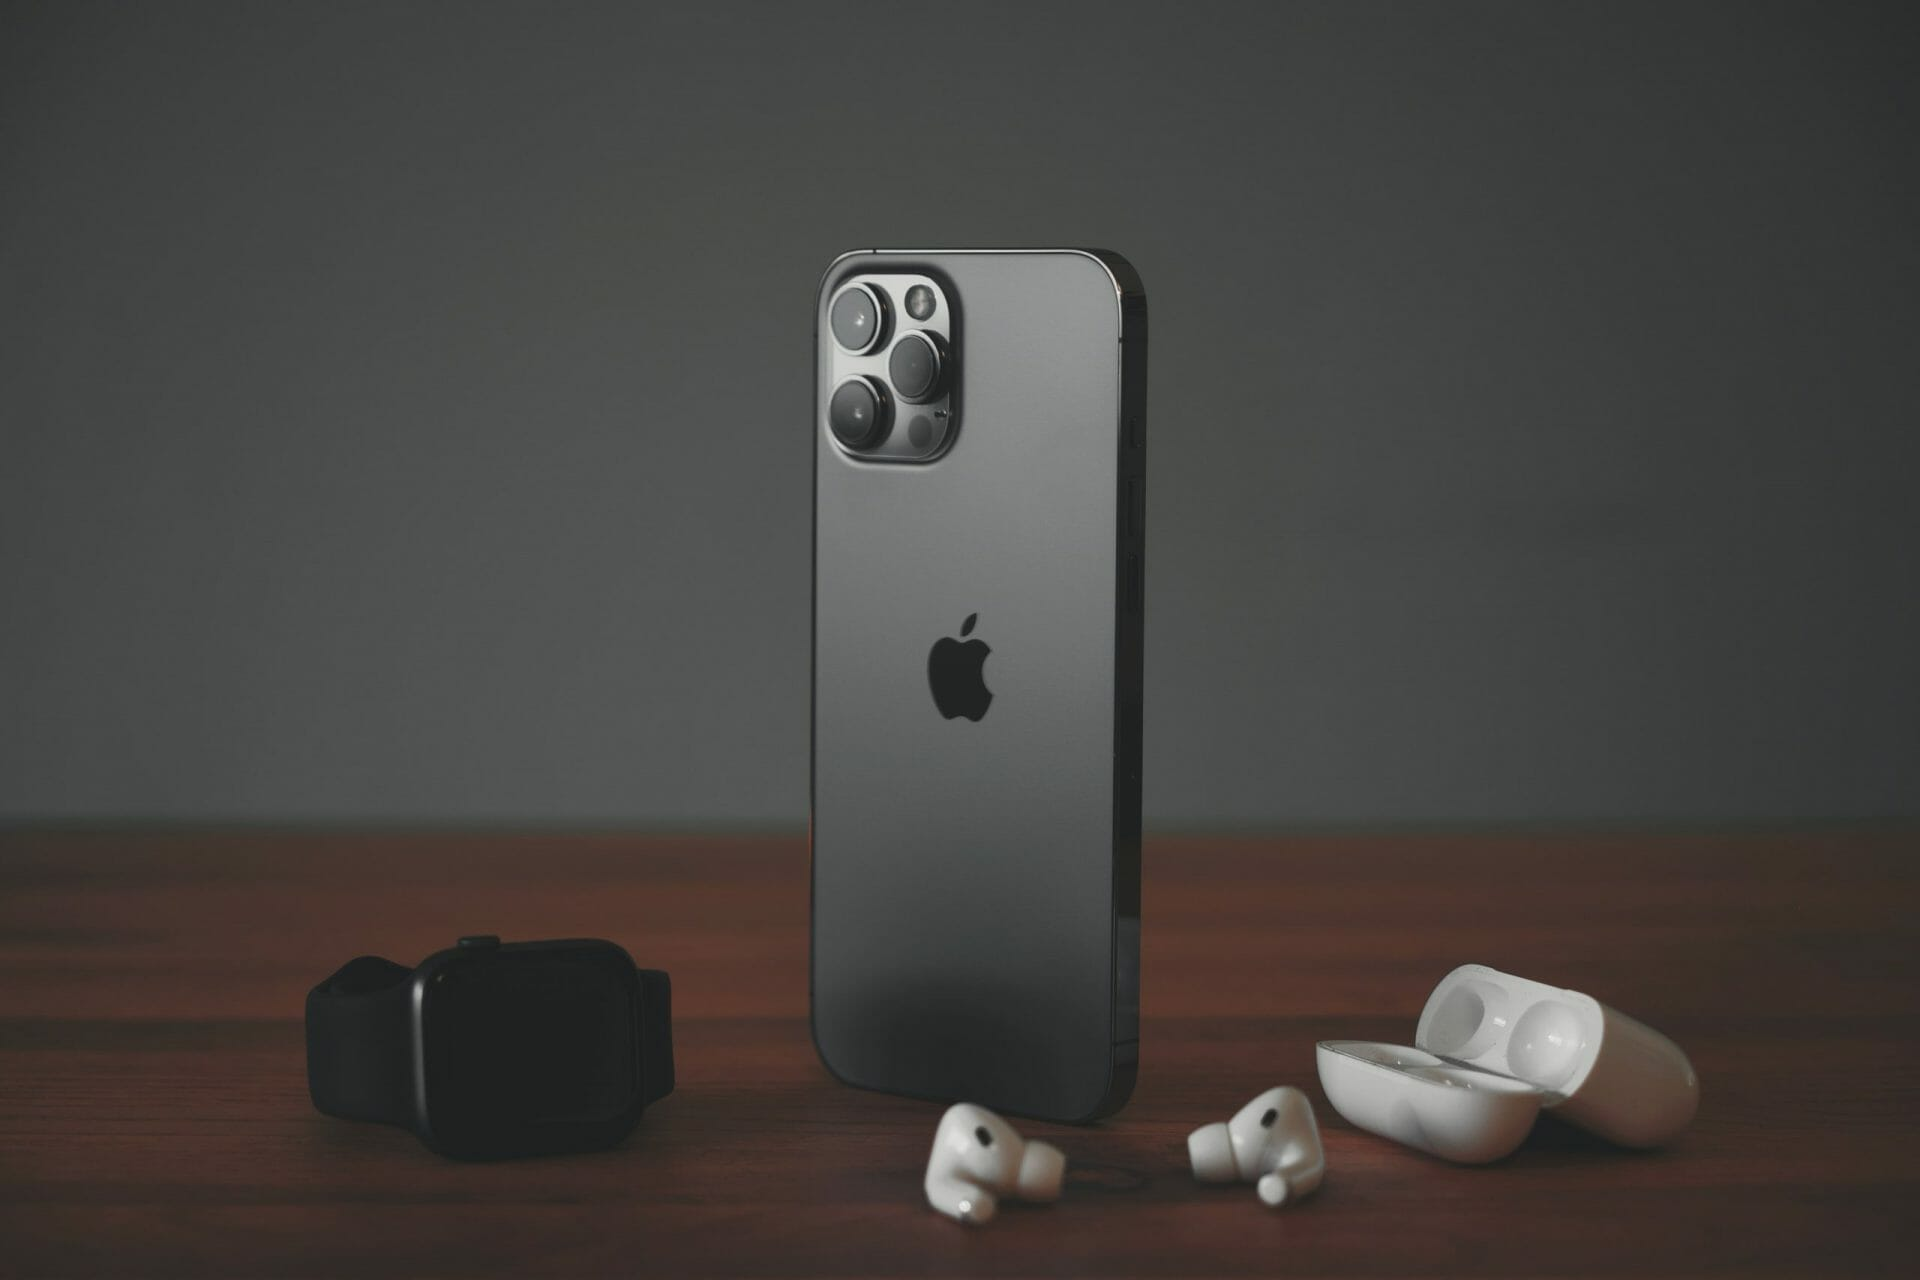 What features do you need for product photography?